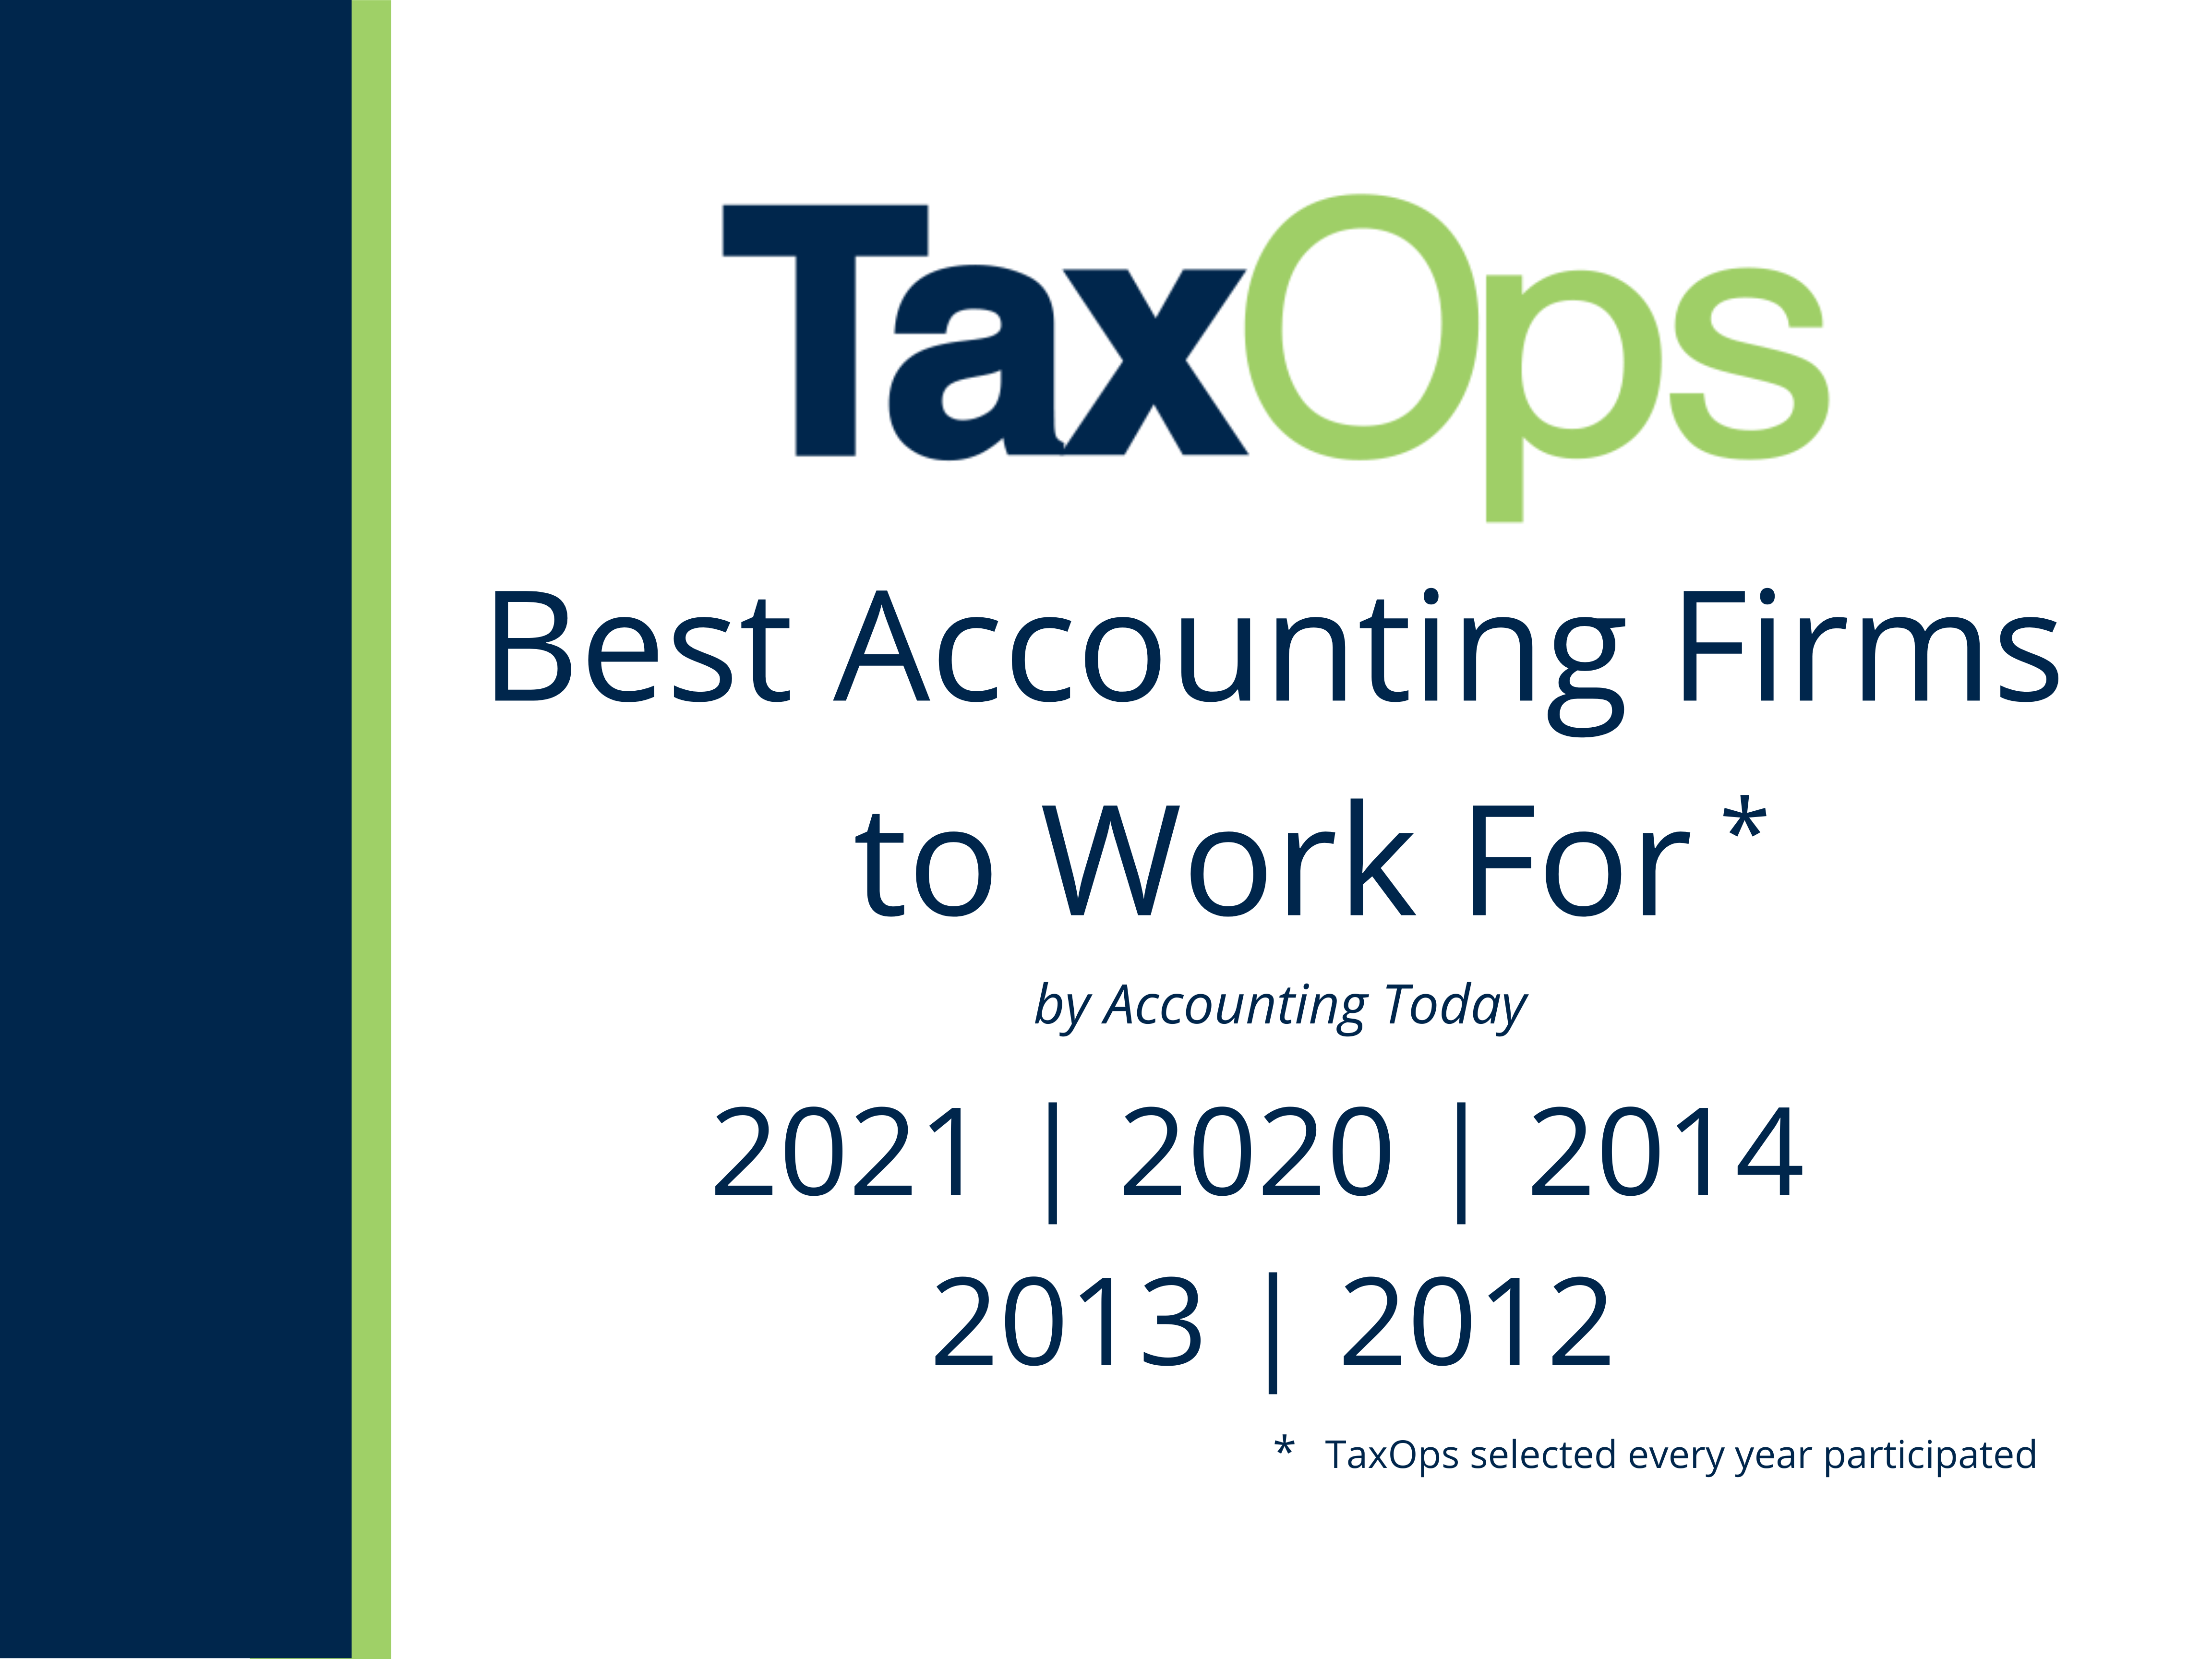 TaxOps selected as a Best Accounting Firm for Work For